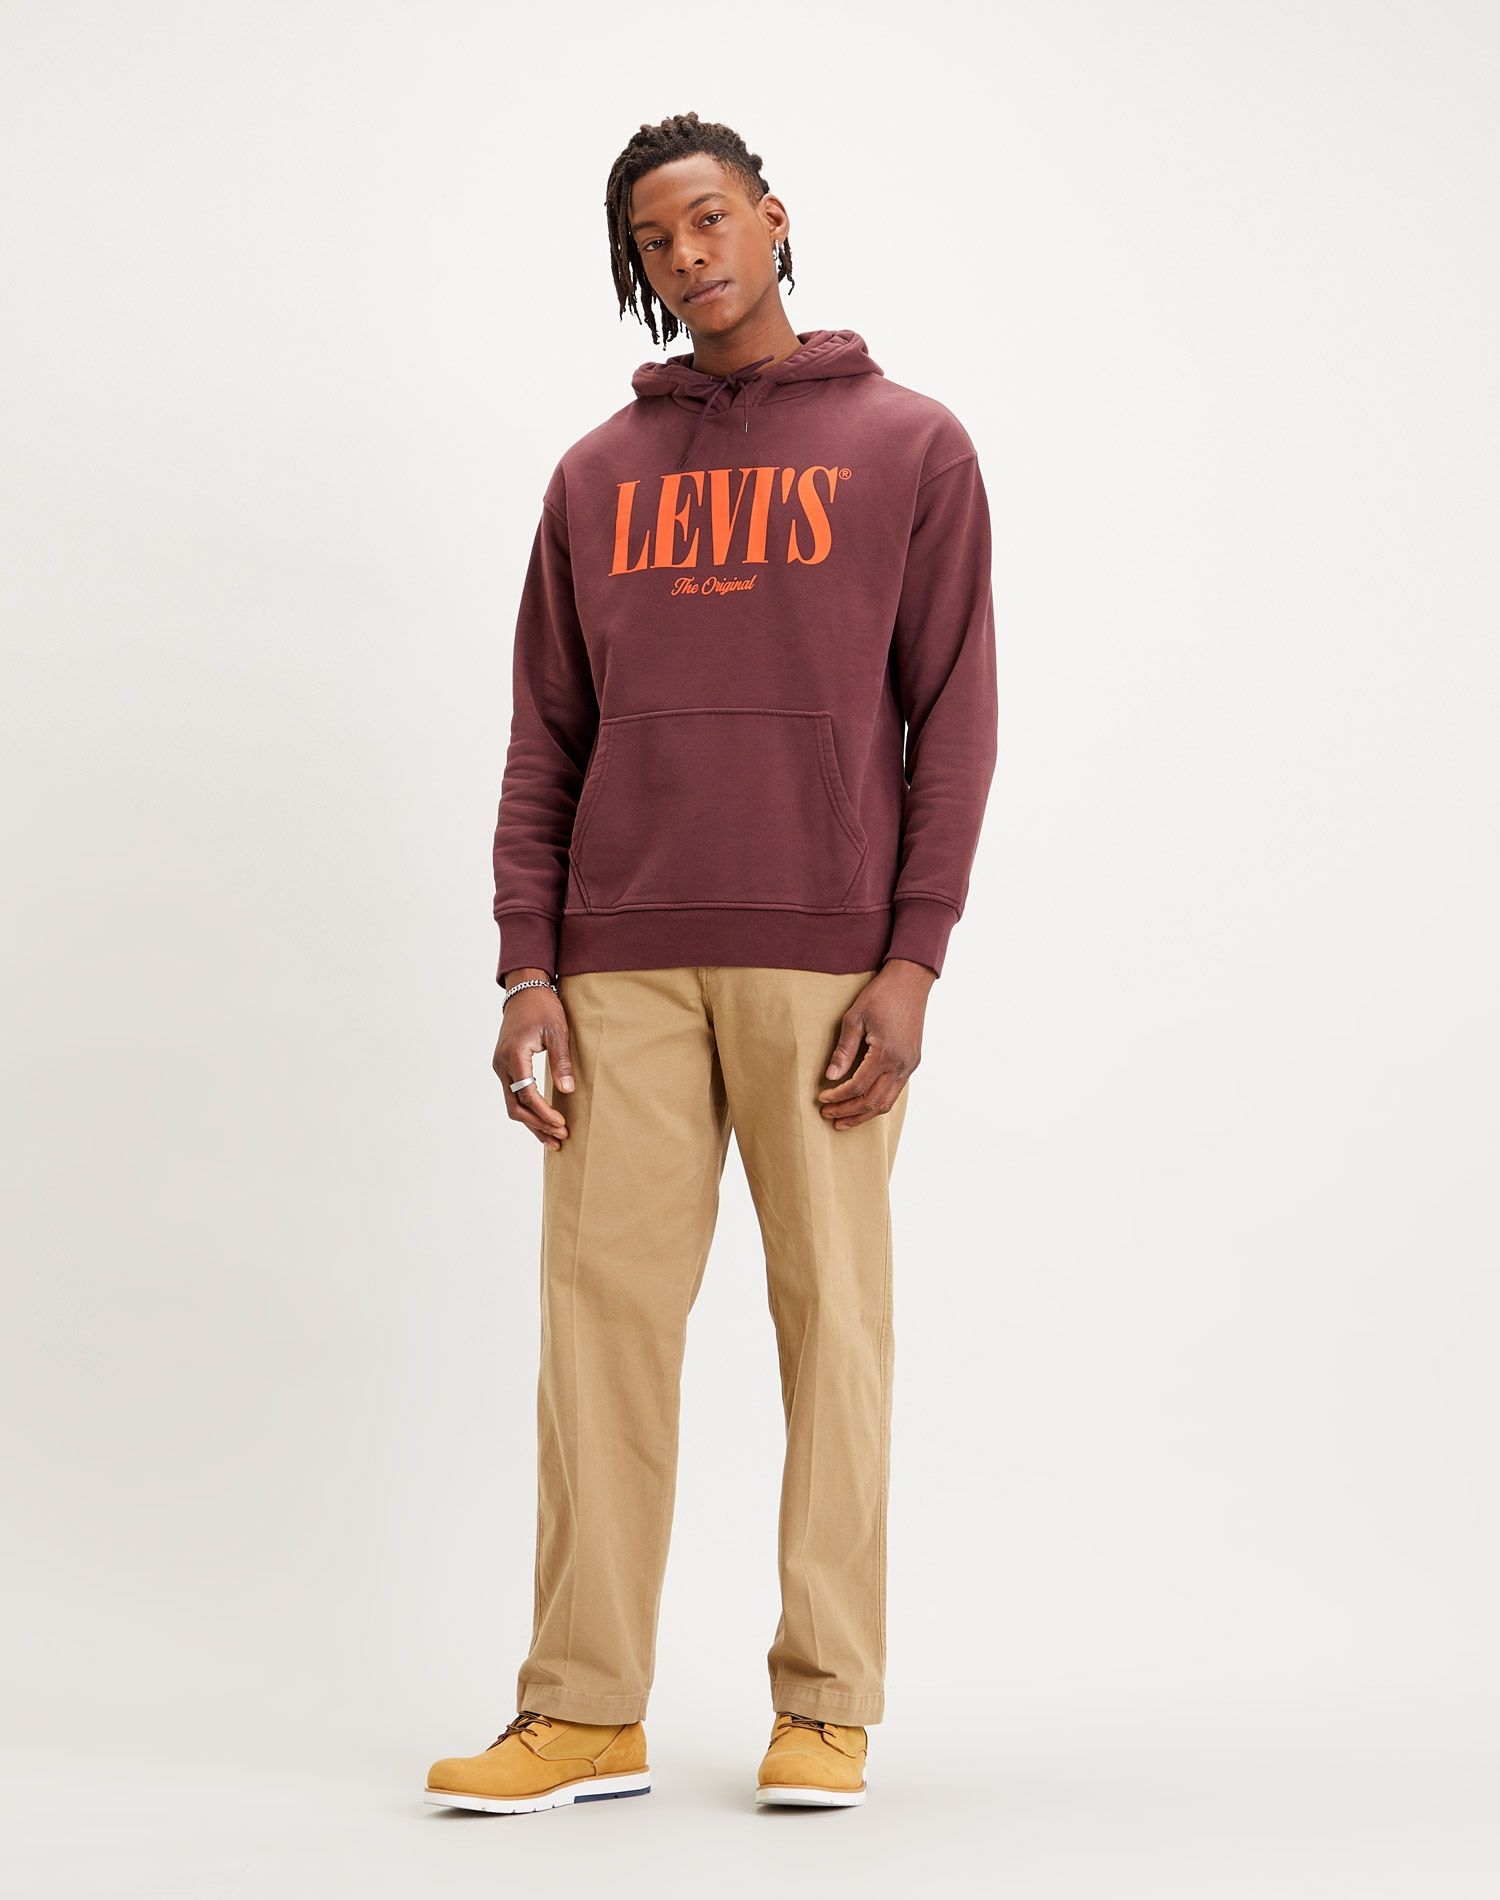 Levi's dessuadora d'home 38479-0003 color granate i caputxa